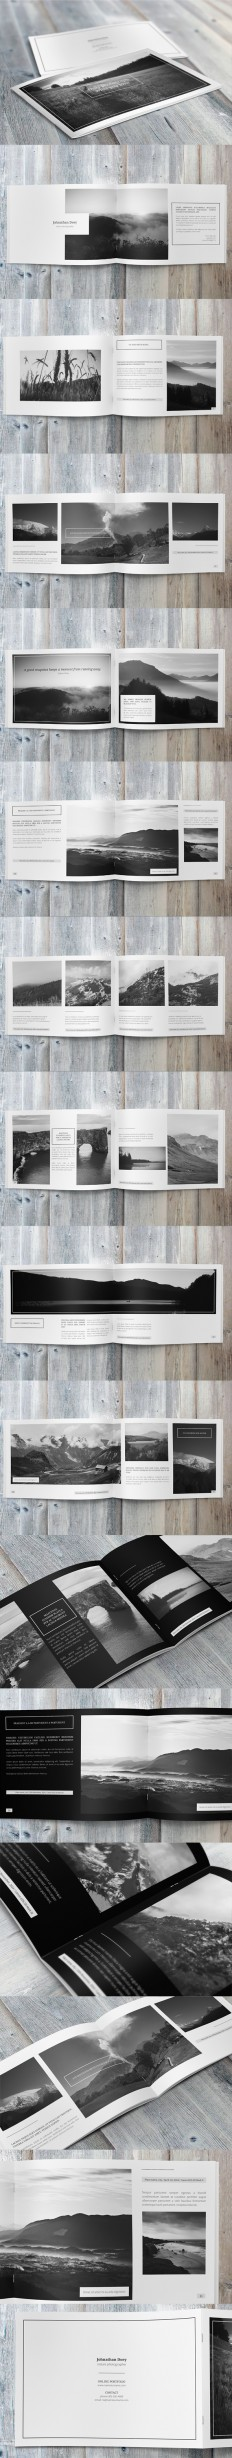 Minimalfolio Photography Portfolio A4 Brochure #5 on